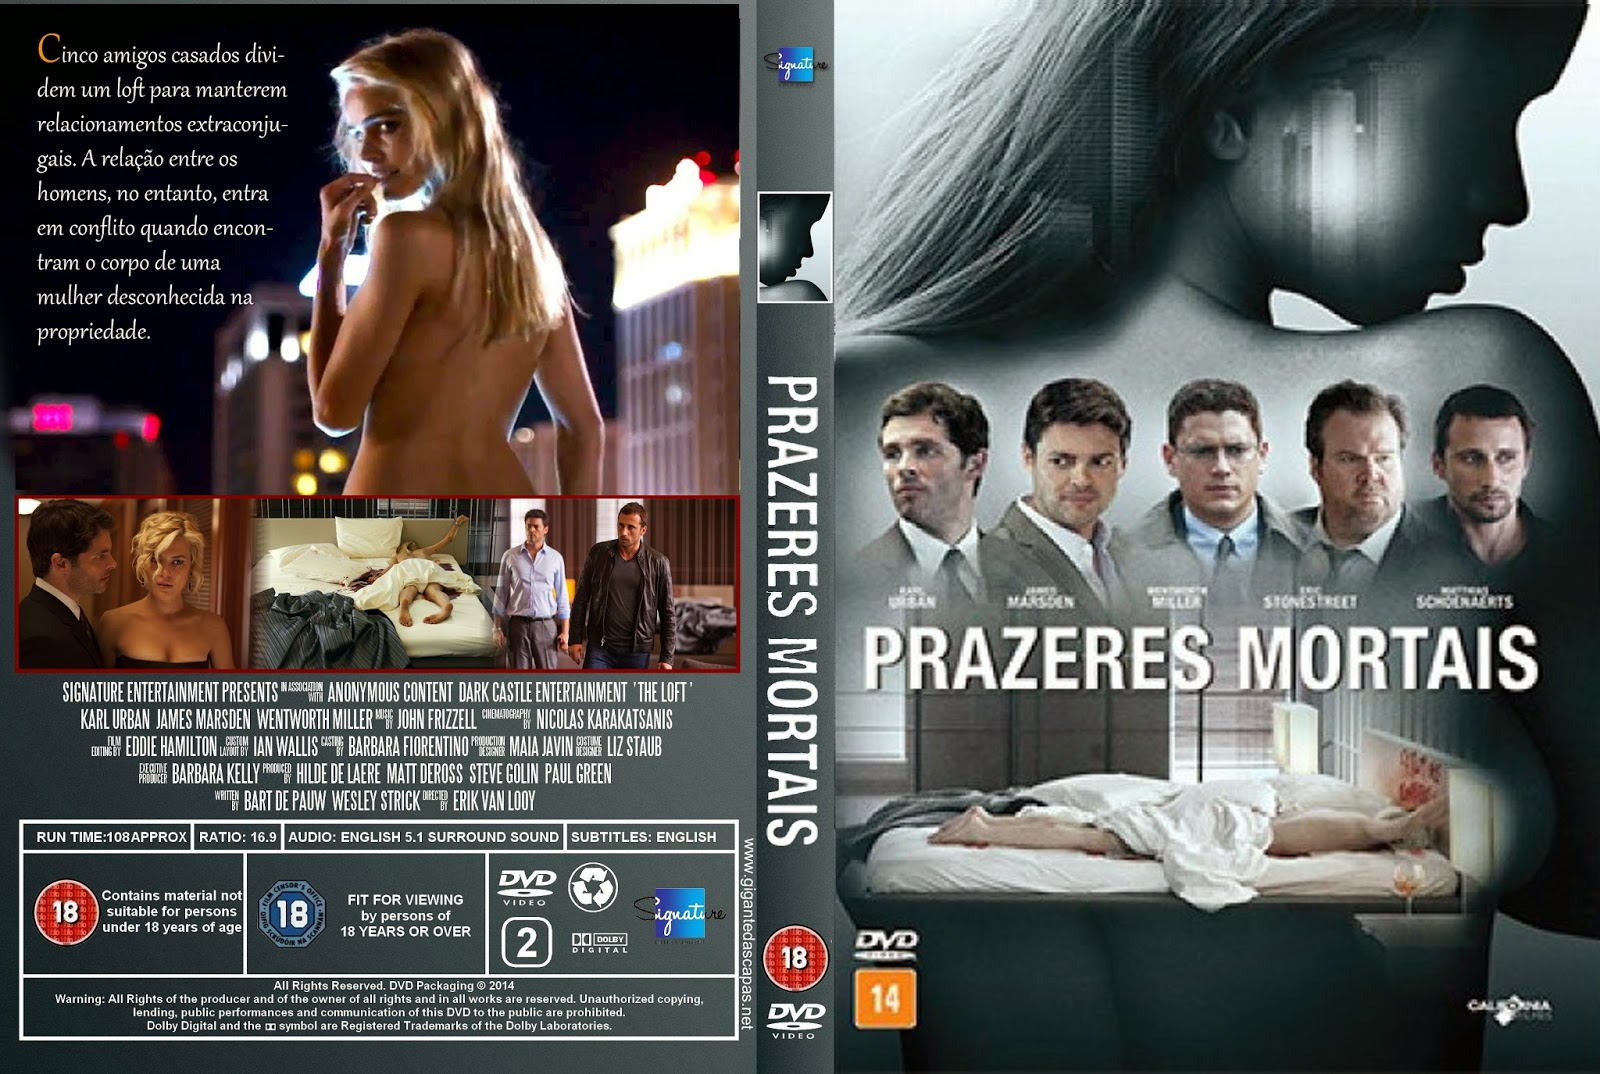 Download Prazeres Mortais DVD-R Prazeres 2BMortais